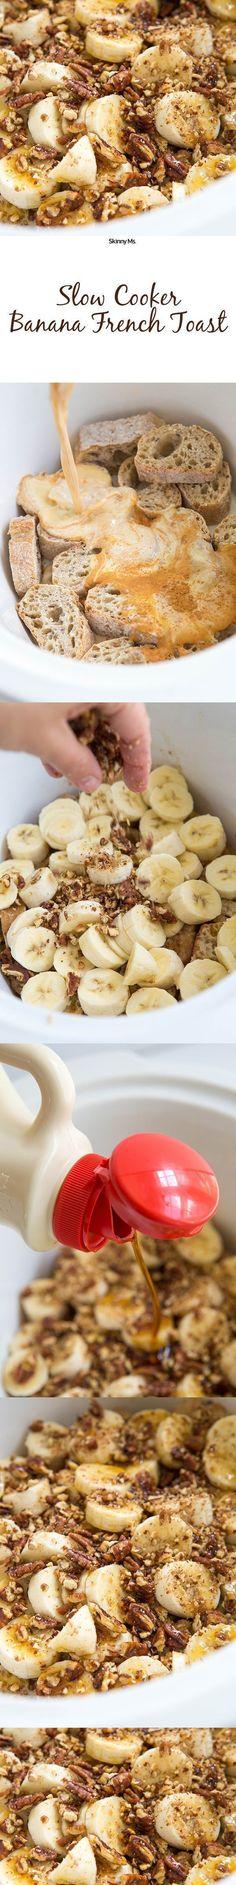 Slow Cooker Banana French Toast